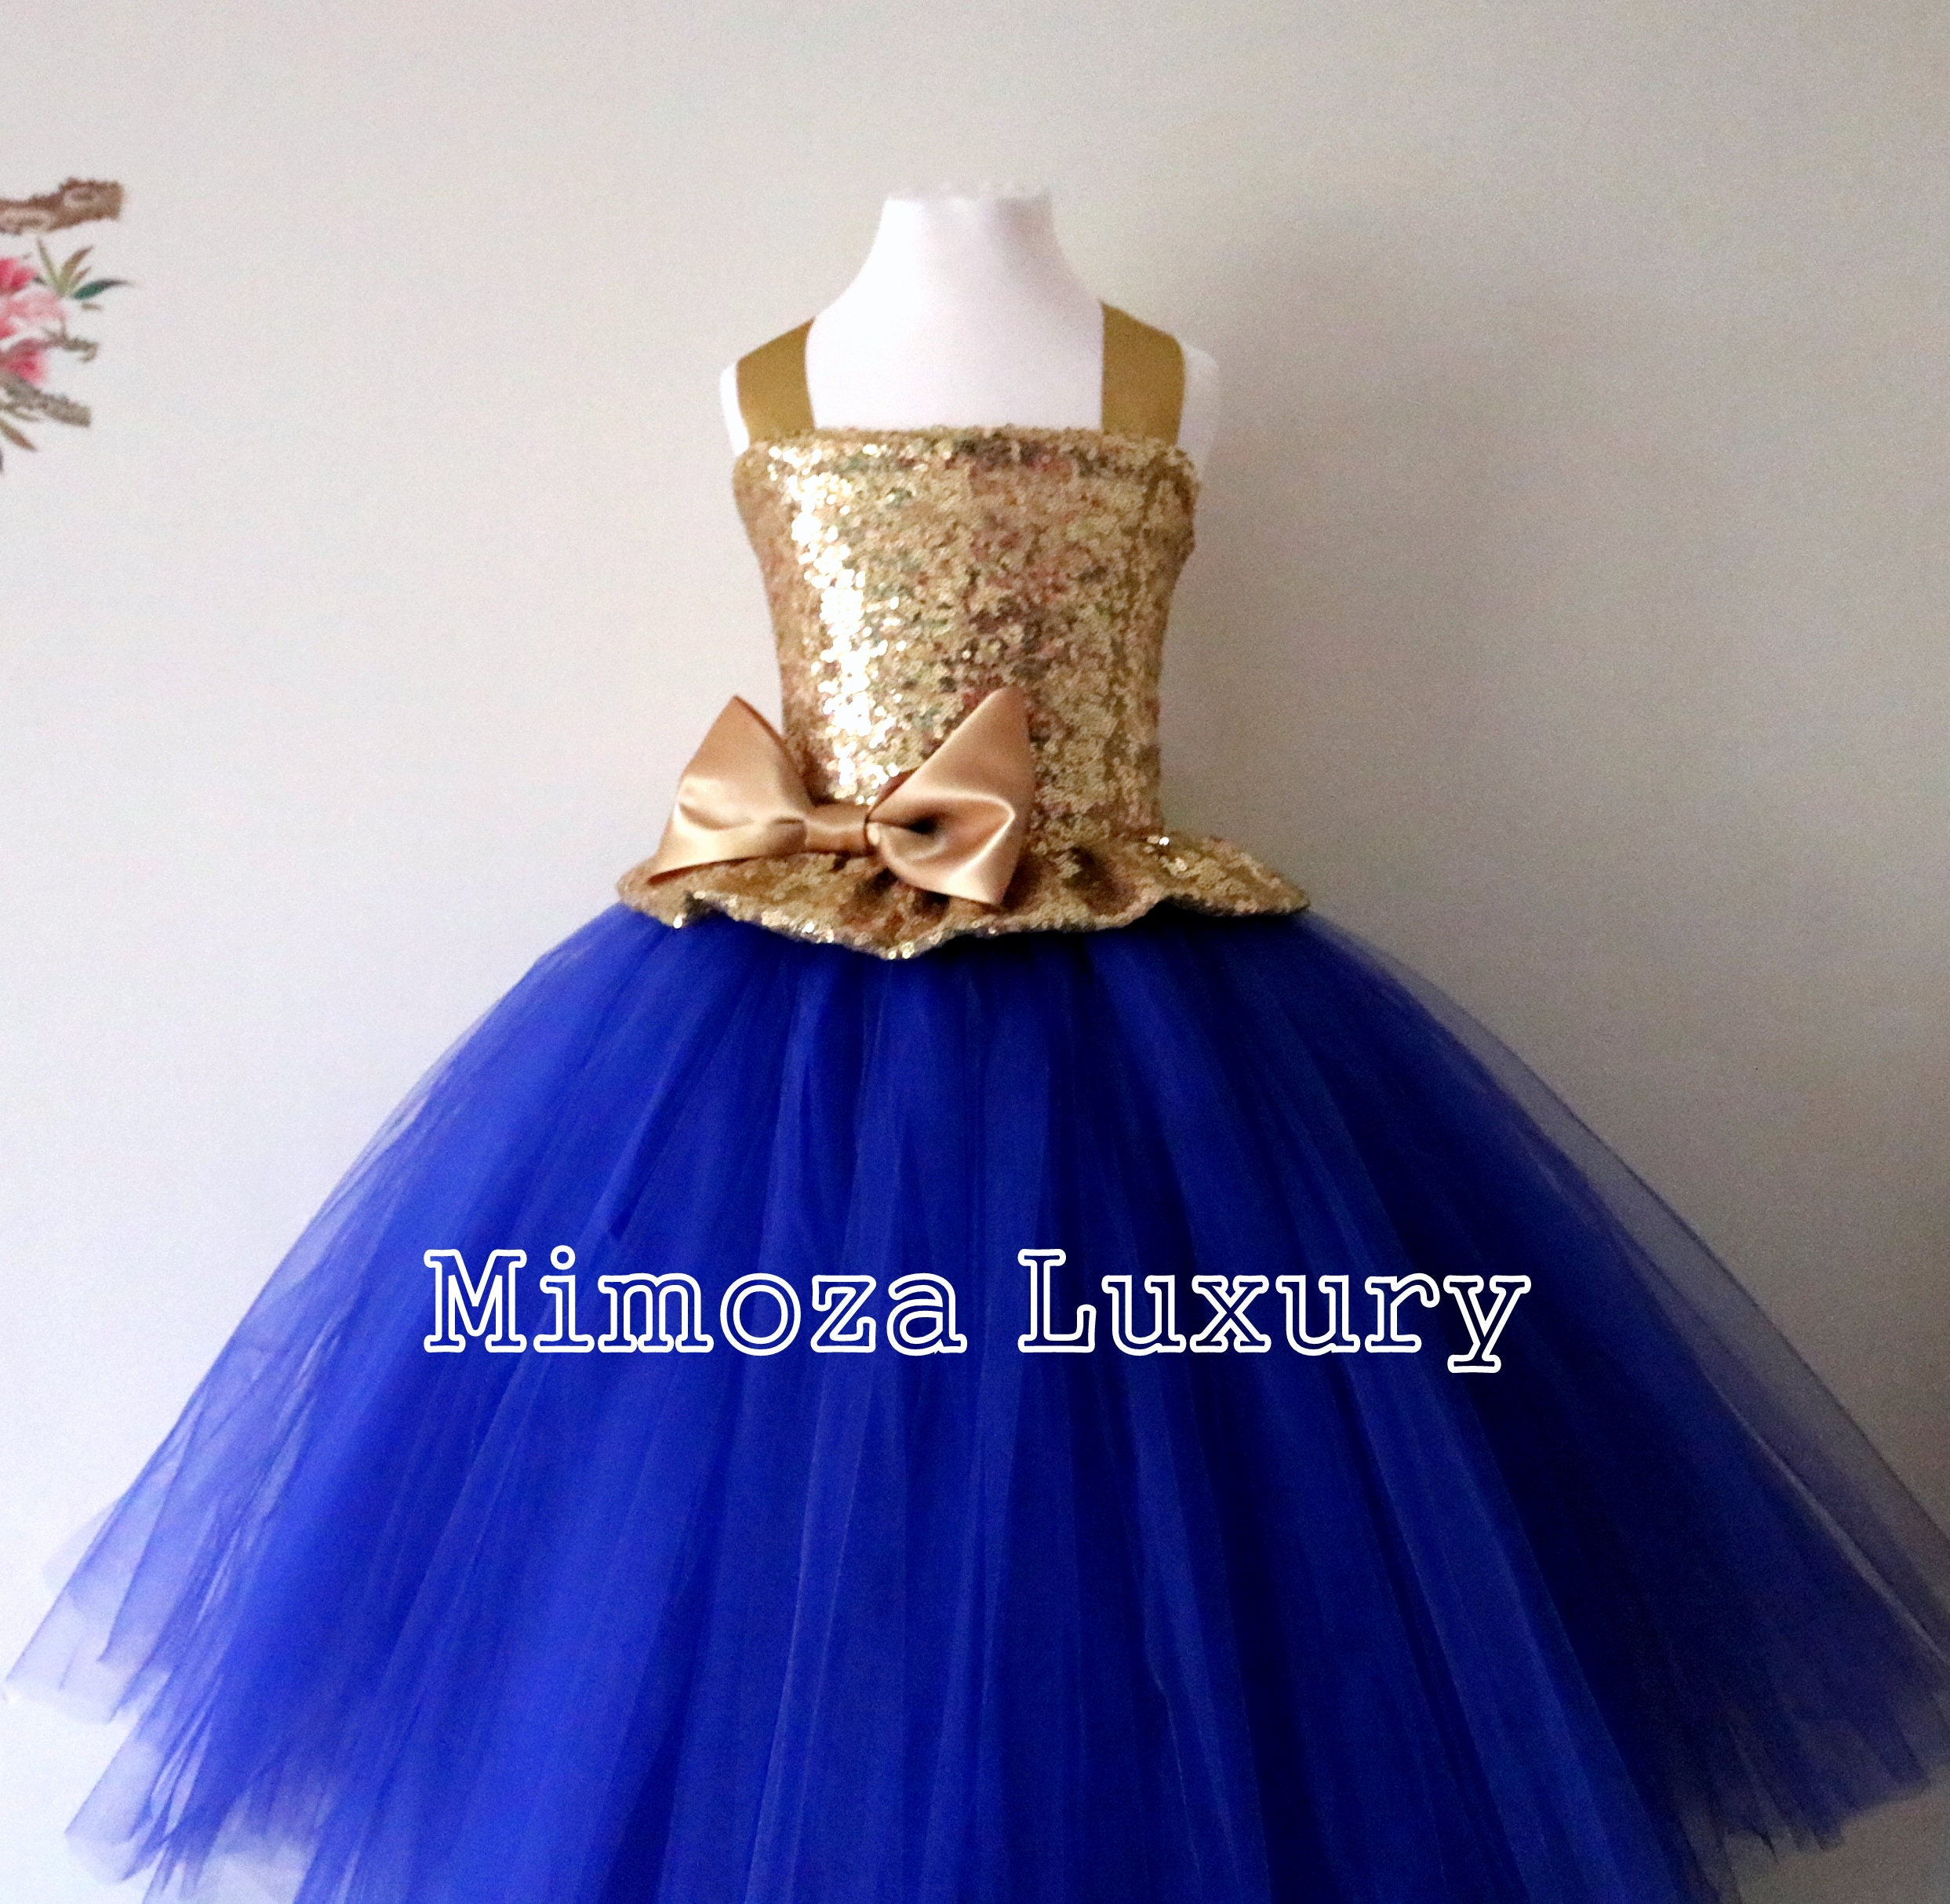 Gold royal blue flower girl dress gold sequin bridesmaid dress gold royal blue flower girl dress gold sequin bridesmaid dress gold flower girl gown bespoke girls dress royal tulle princess dress ombrellifo Image collections